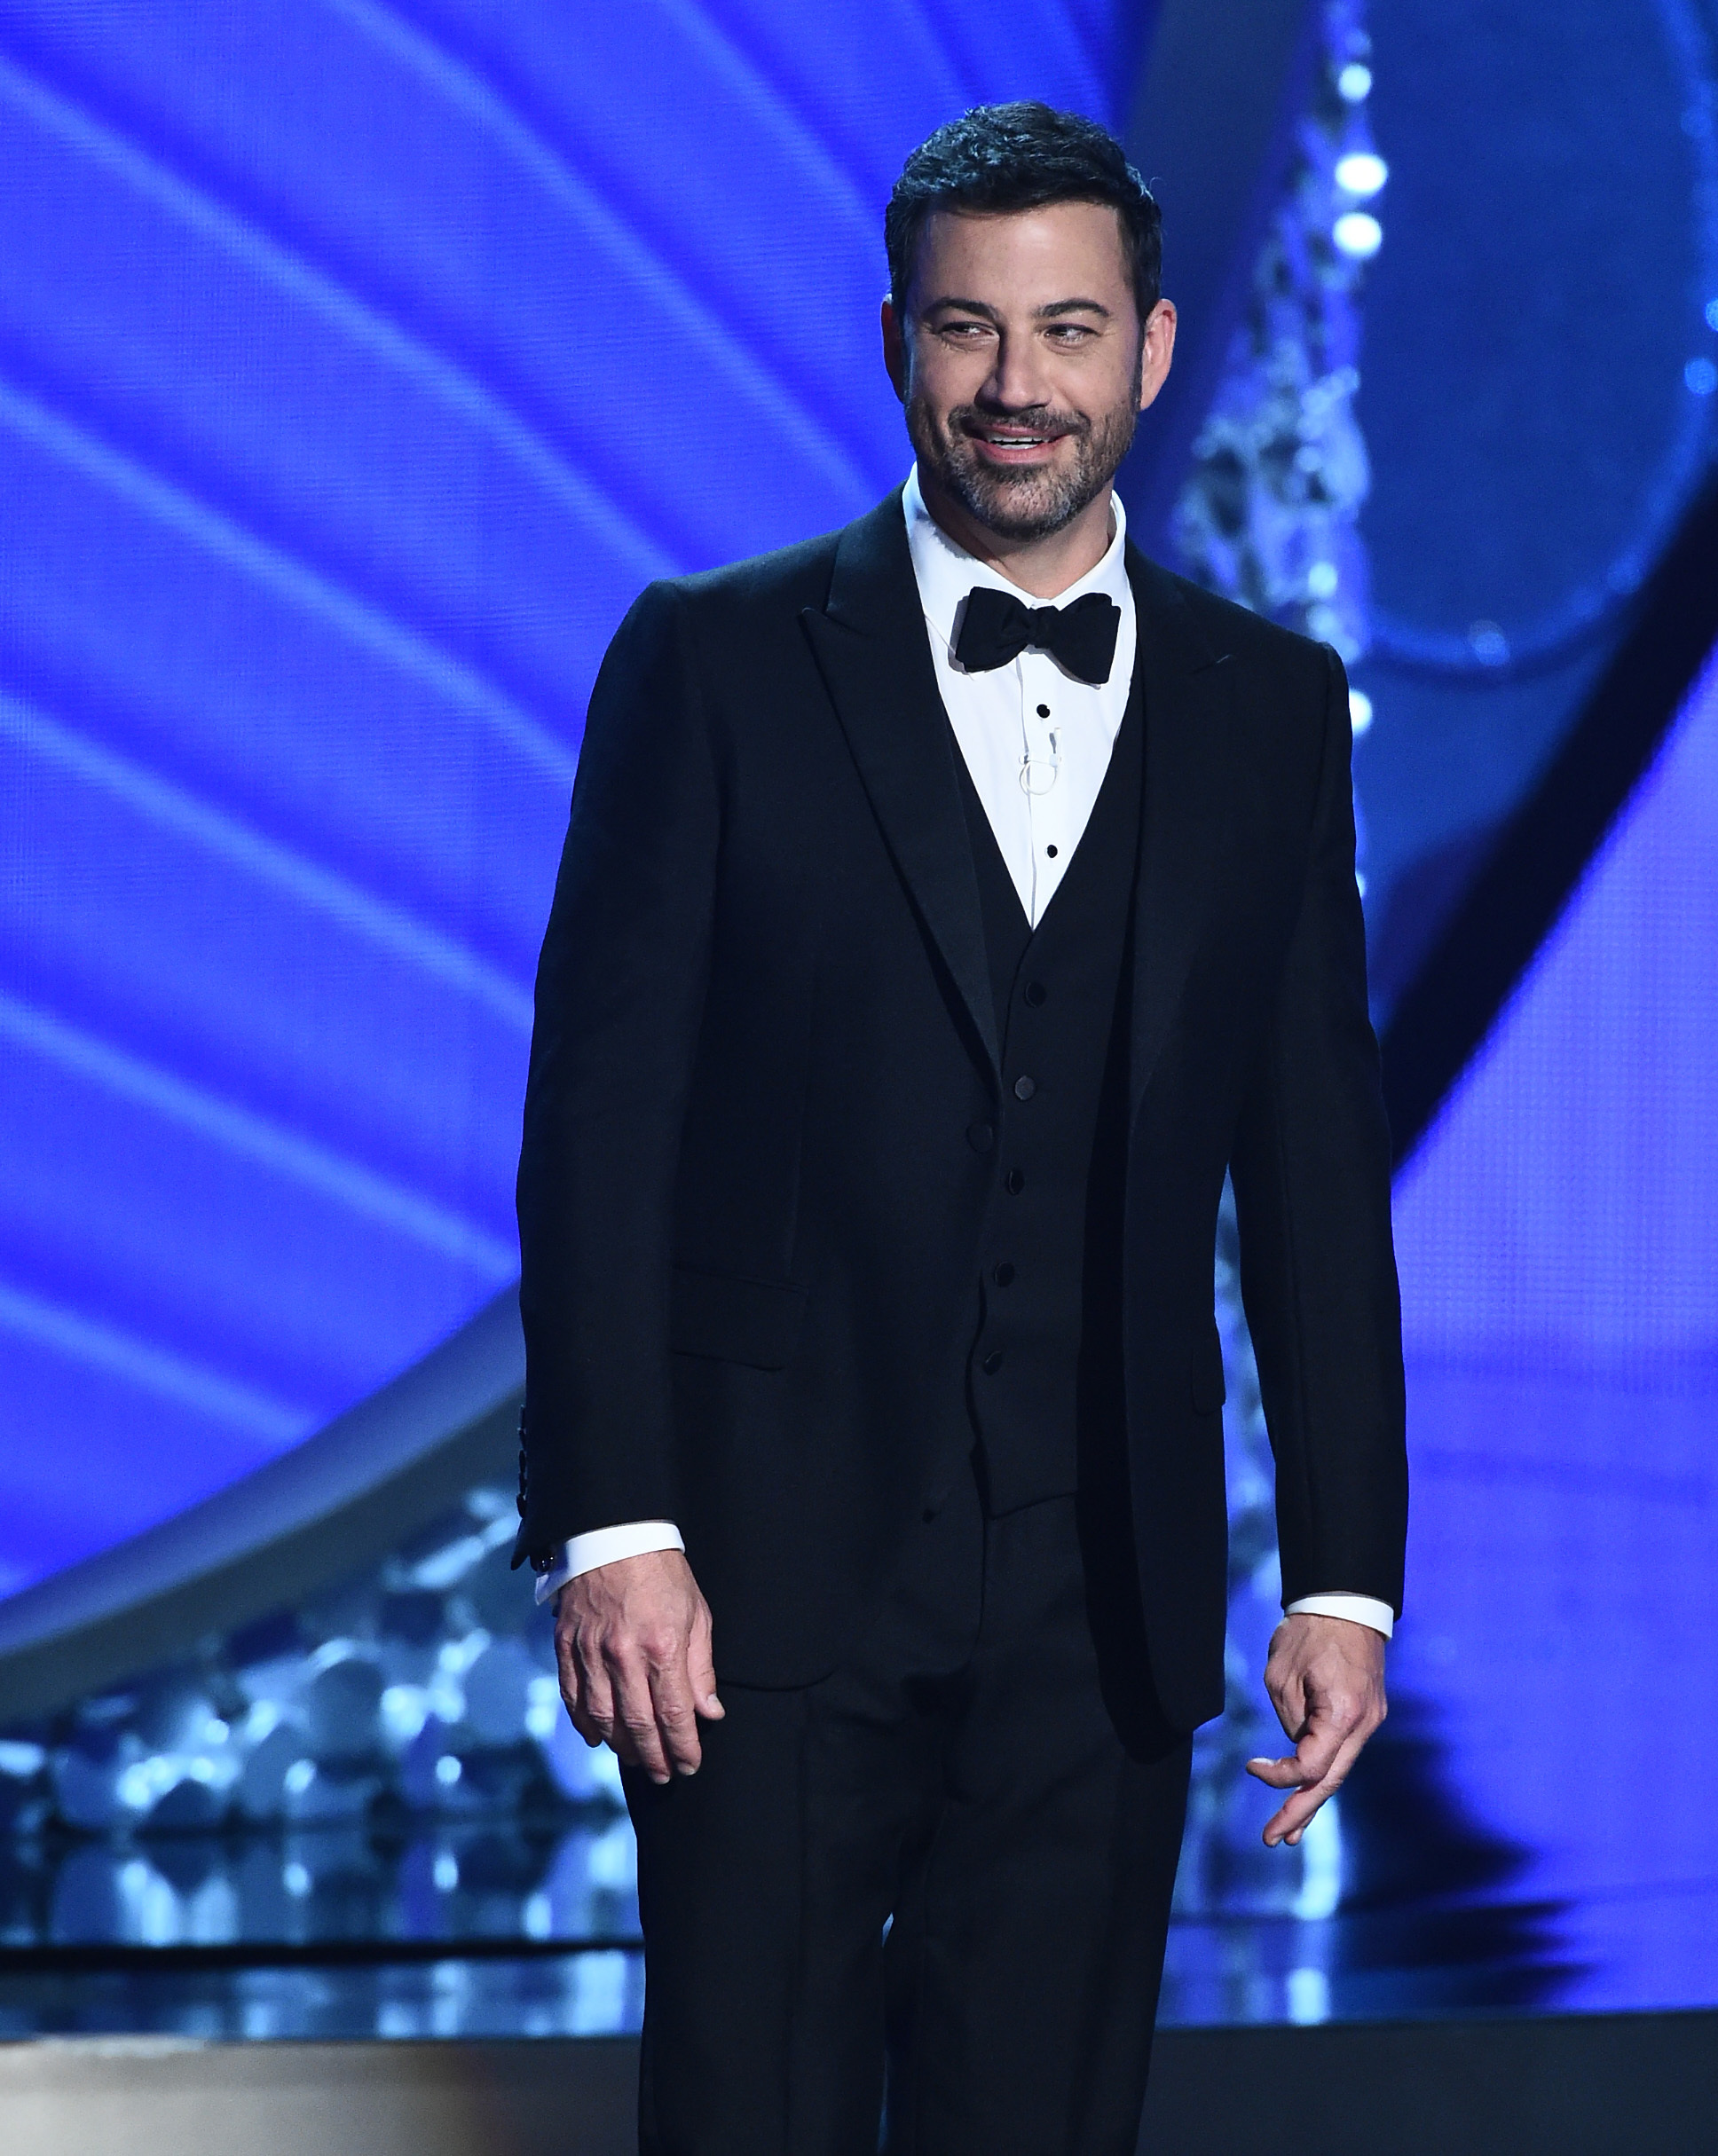 Jimmy Kimmel on Harvey Weinstein, the Oscars and more